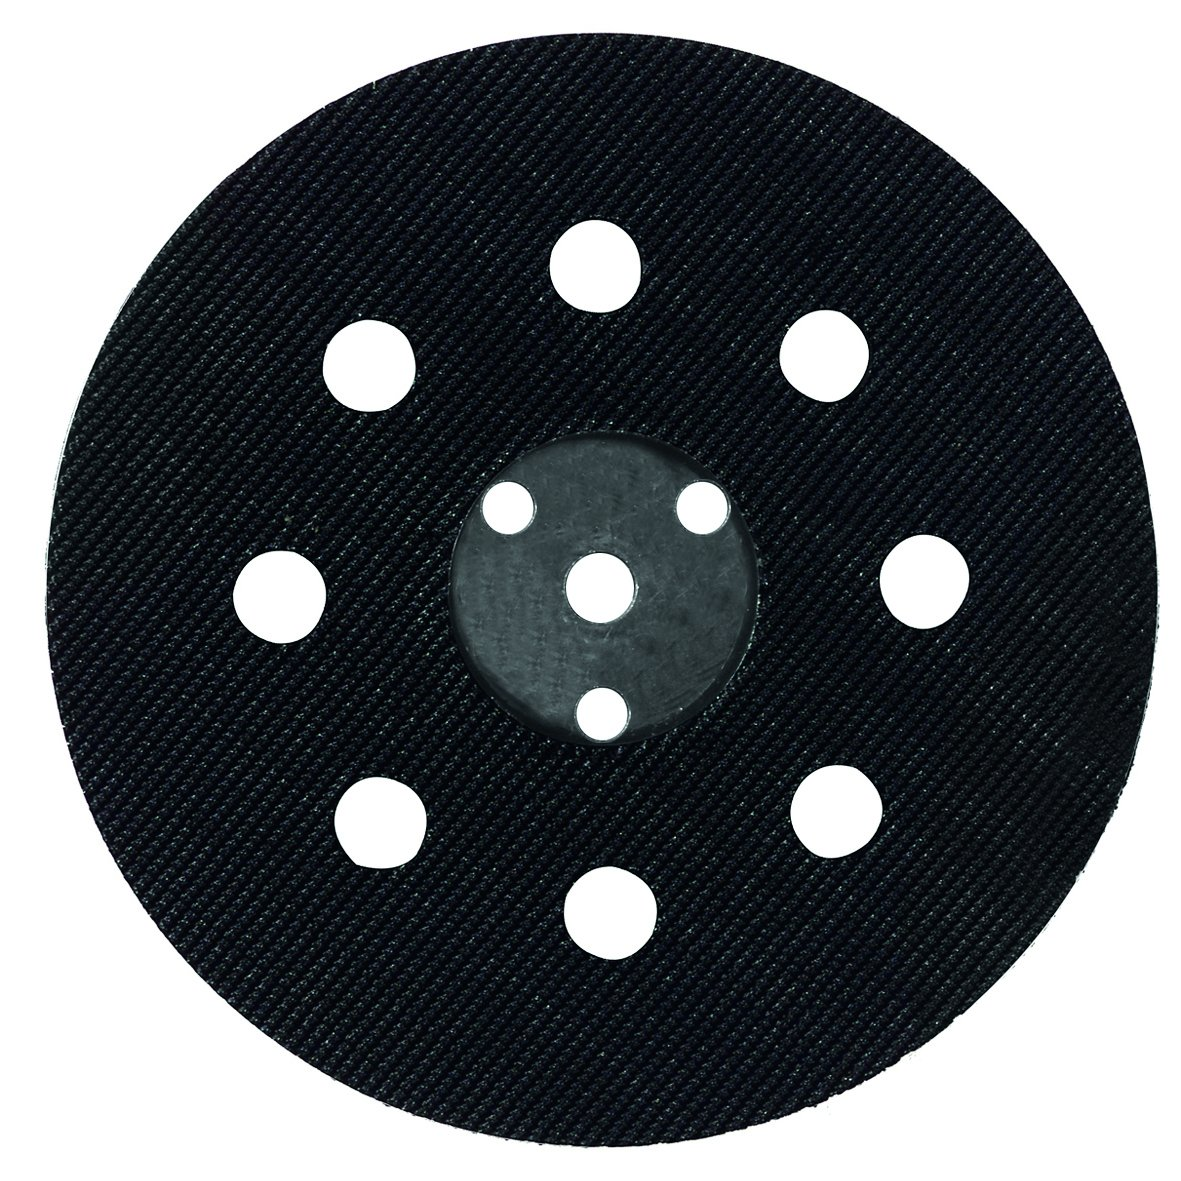 Wolfcraft 2227000 125mm Easy Fix Backing Pad for Bosch PEX 12/ 125/ 400